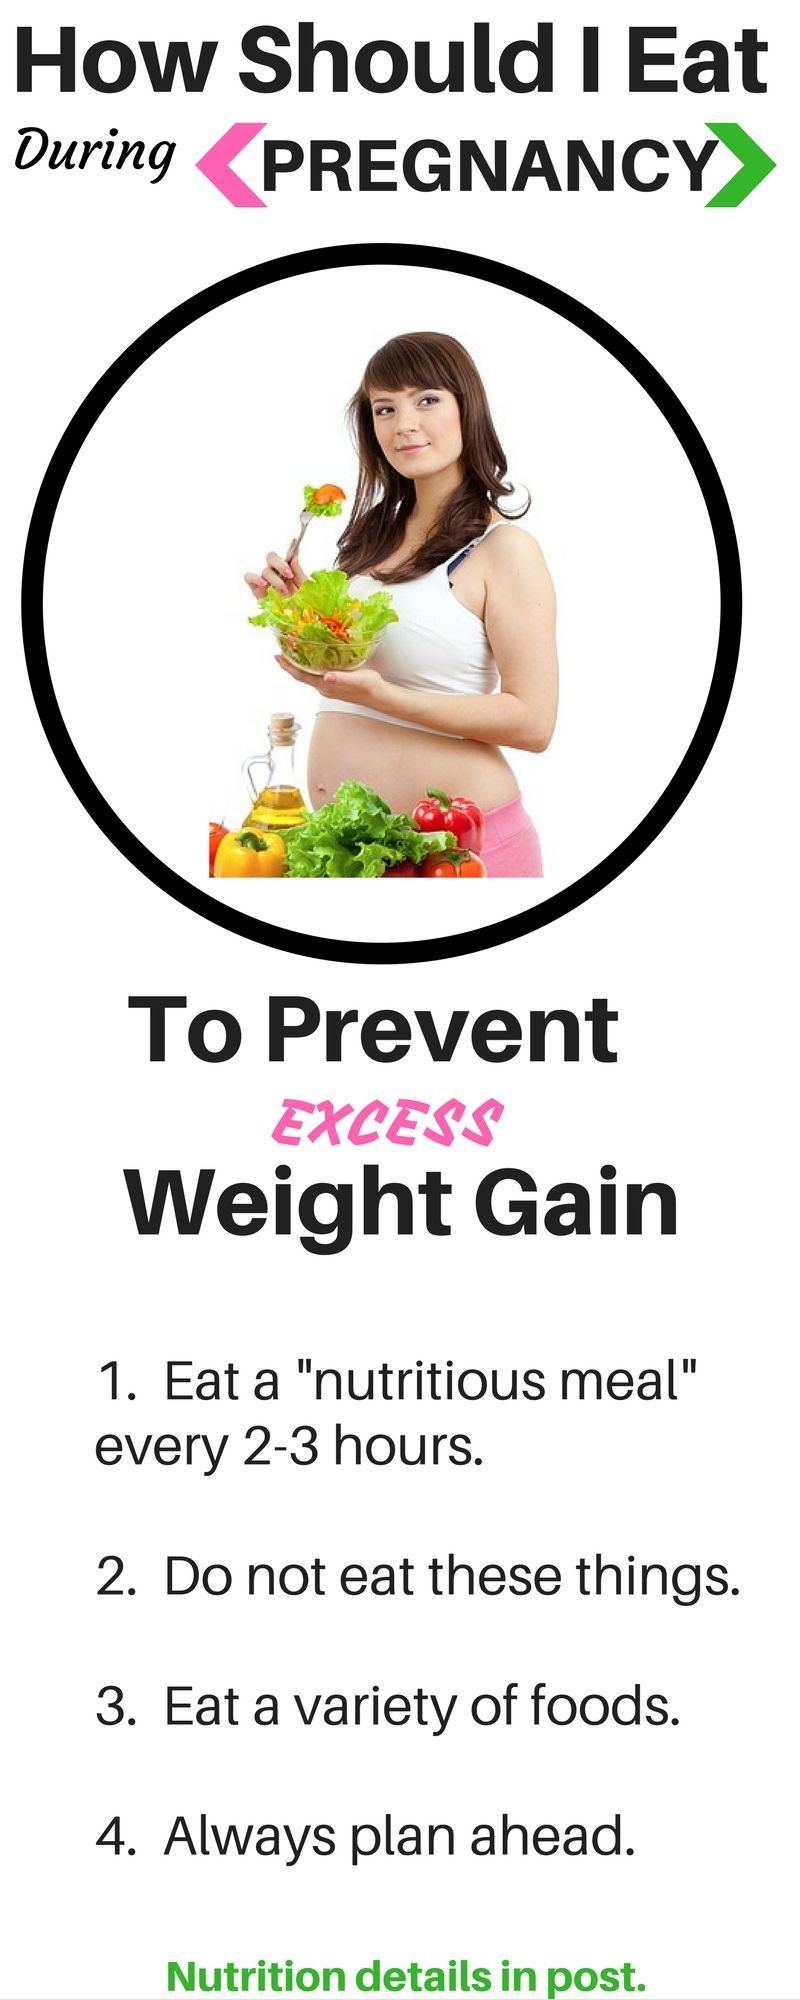 How to be healthy and not gaining weight during pregnancy